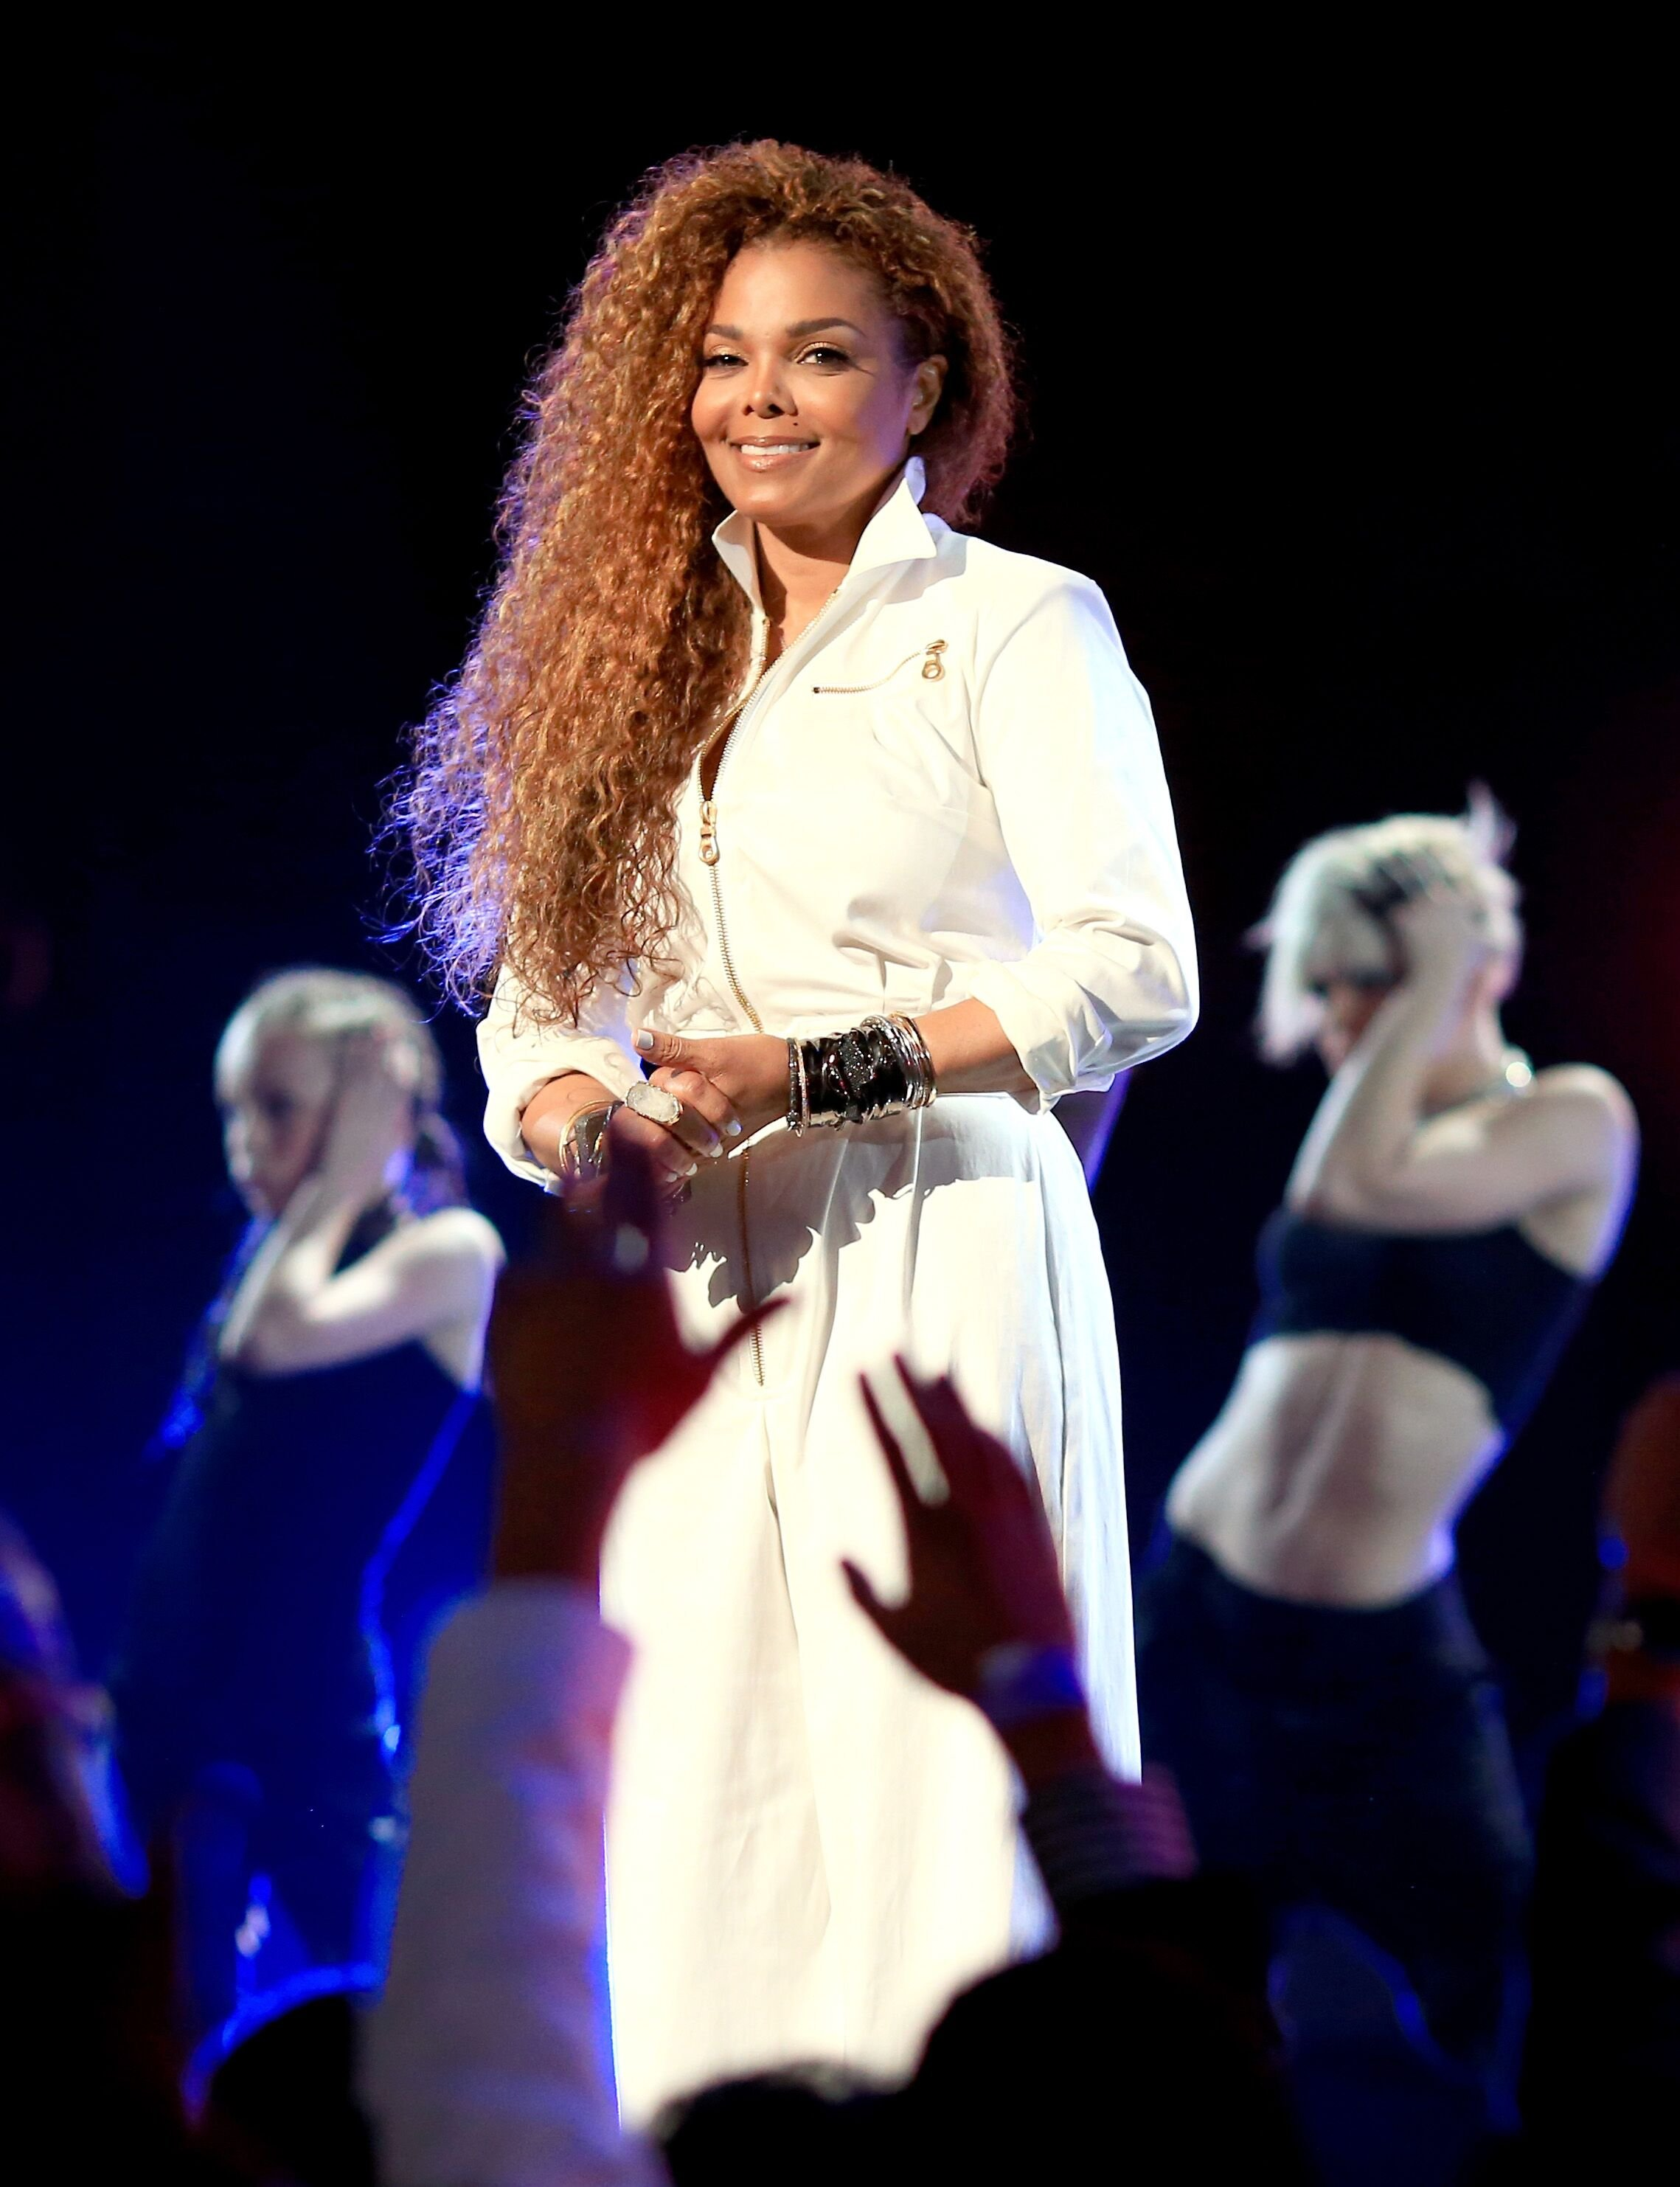 Janet Jackson speaks onstage during the 2015 BET Awards held at Microsoft Theater on June 28, 2015 in Los Angeles, California. | Photo: Getty Images